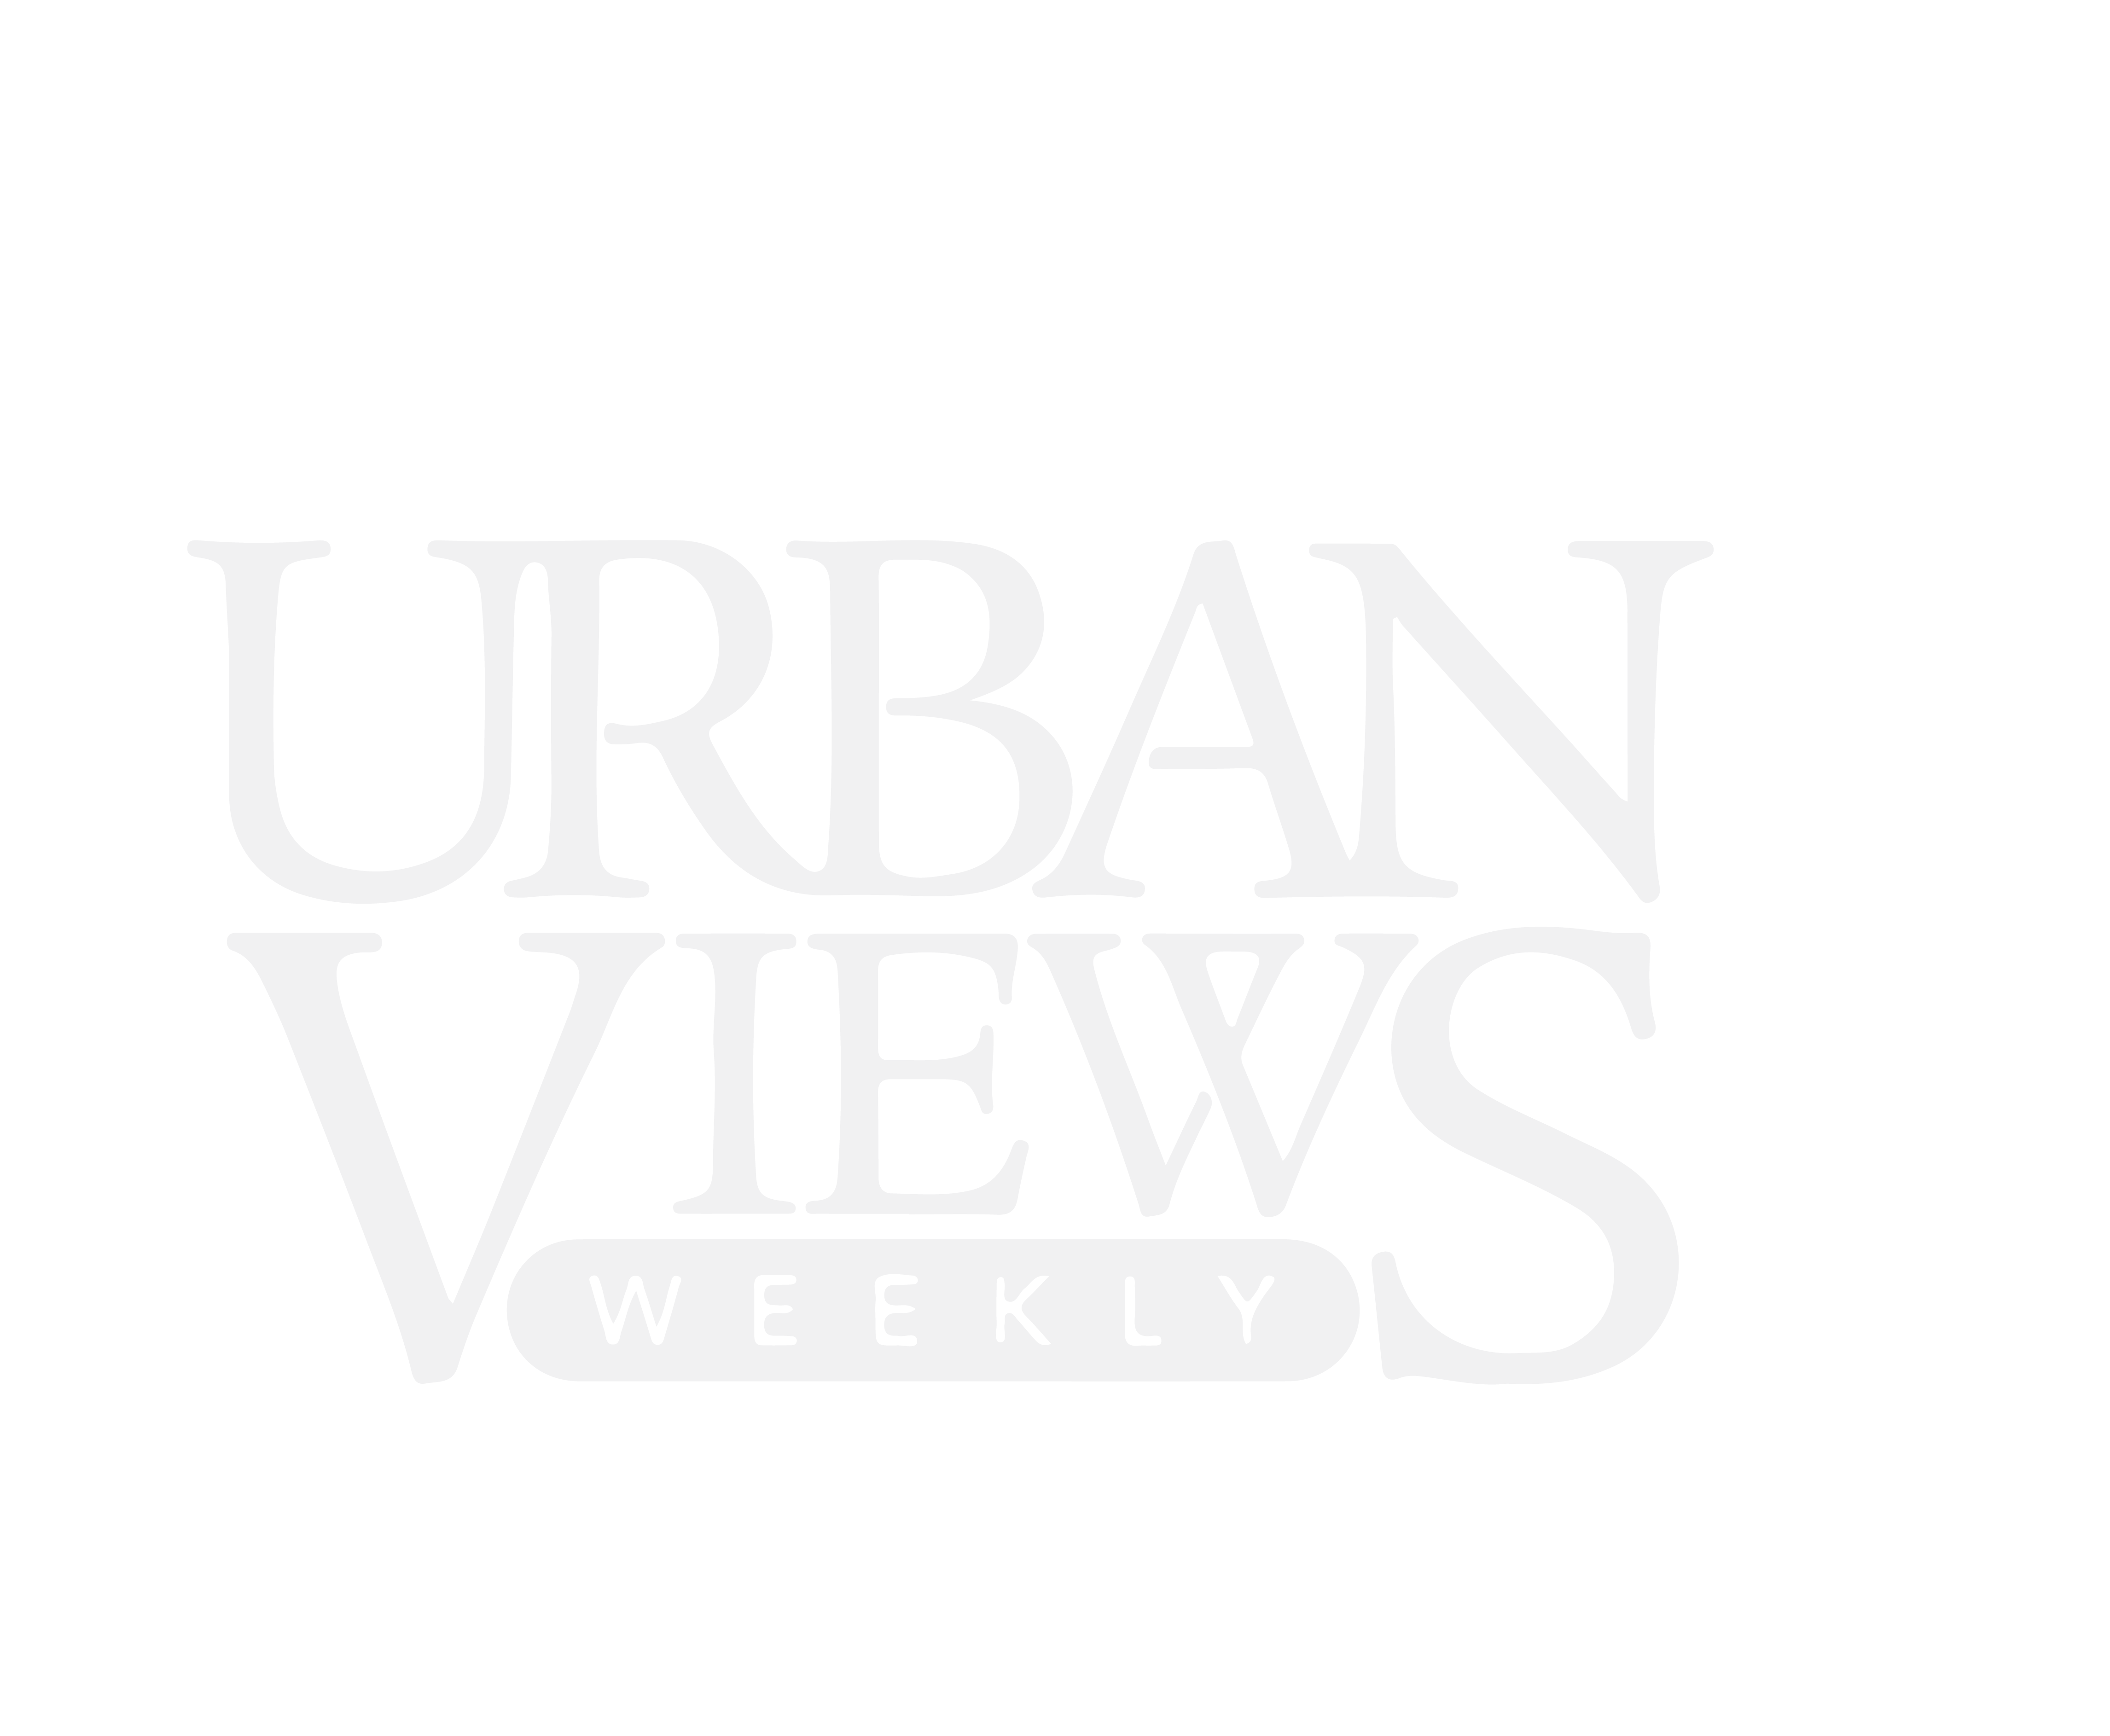 URBAN NEWS WEEKLY FEATURE